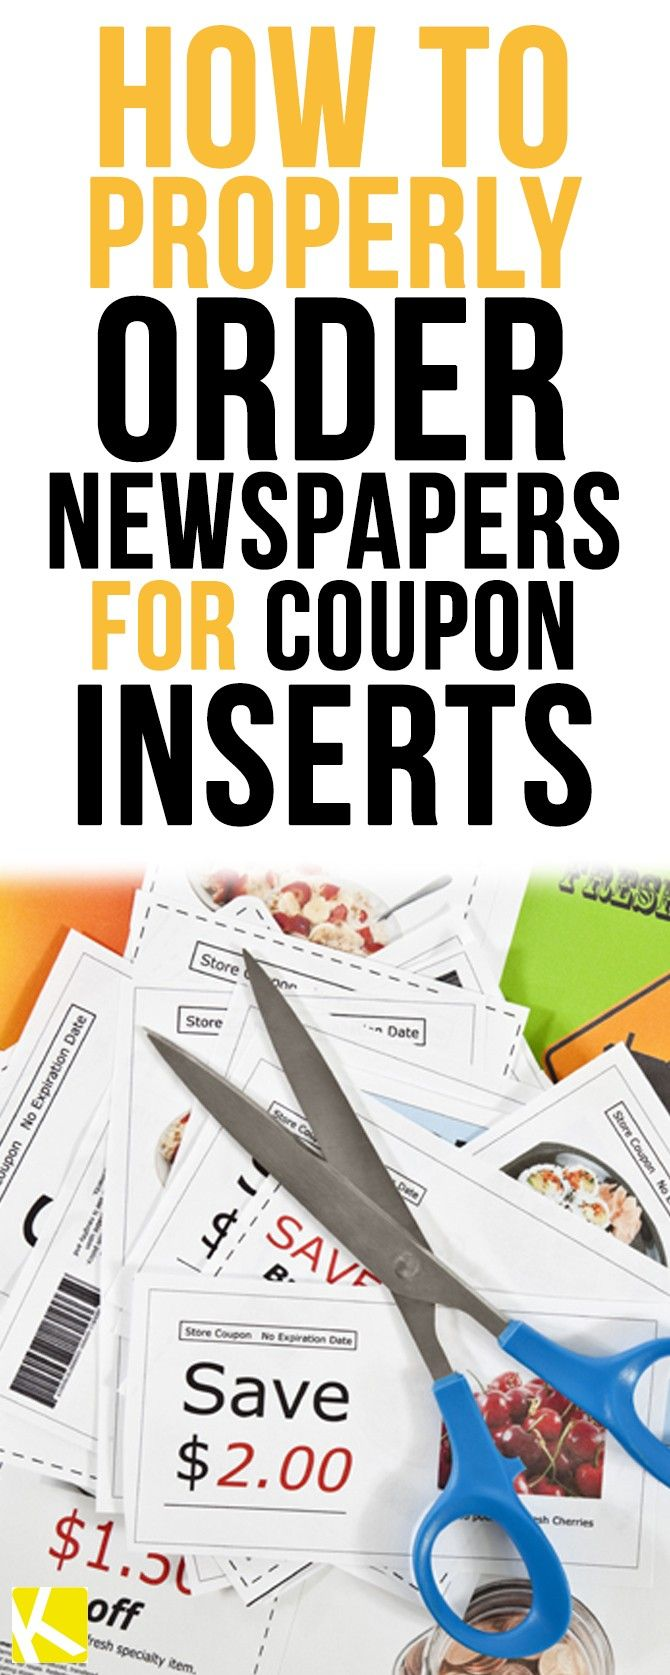 How to Properly Order Newspapers for Coupon Inserts